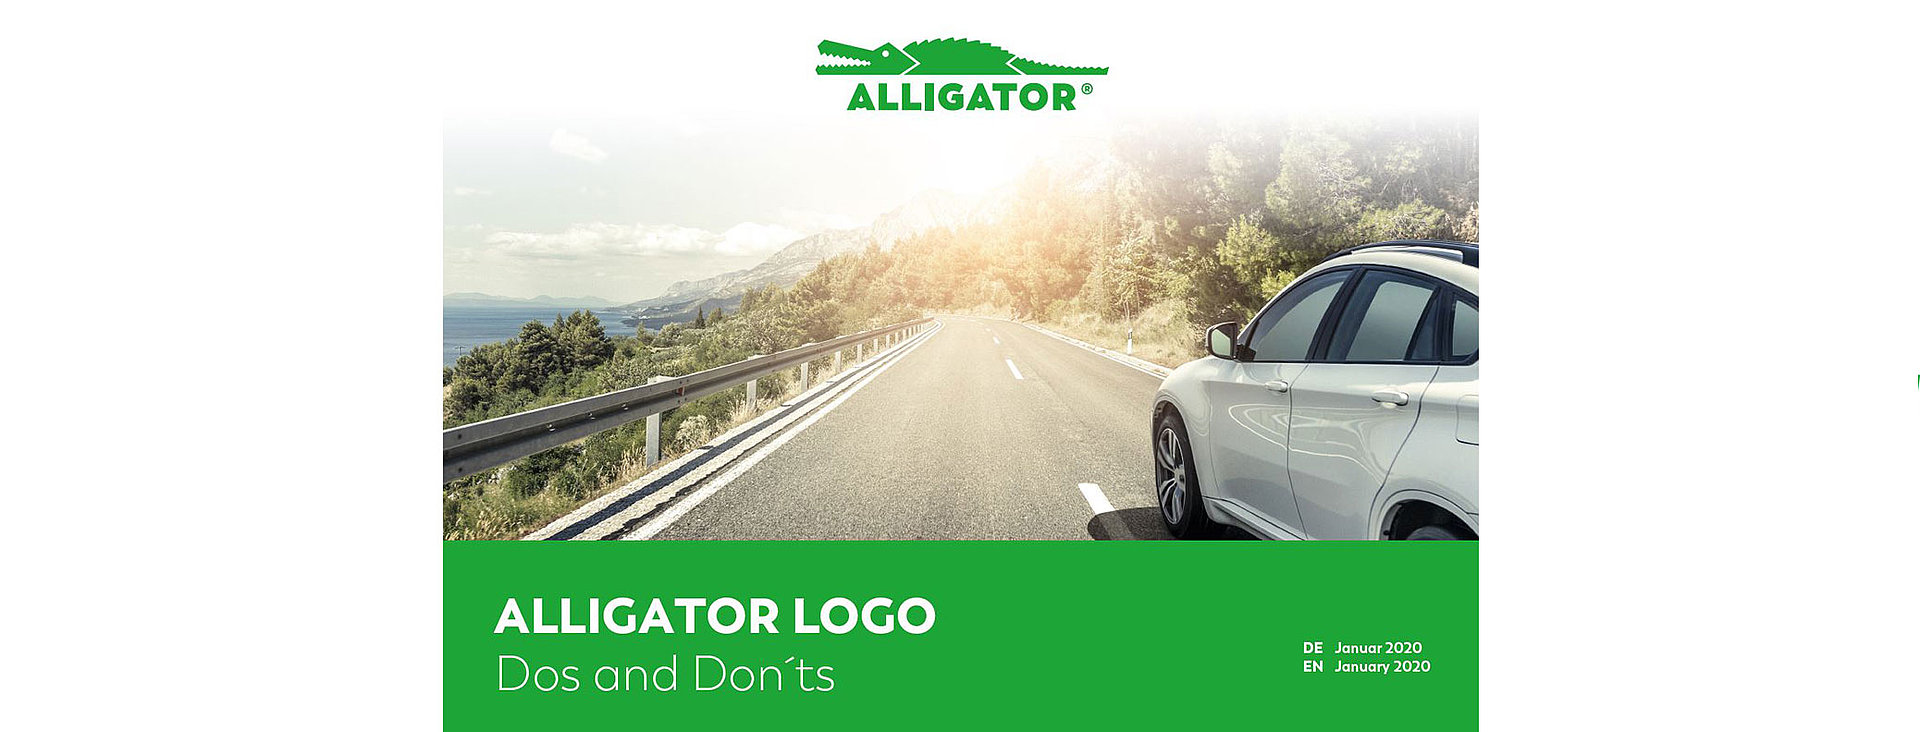 ALLIGATOR design and logo with car on country road in the background